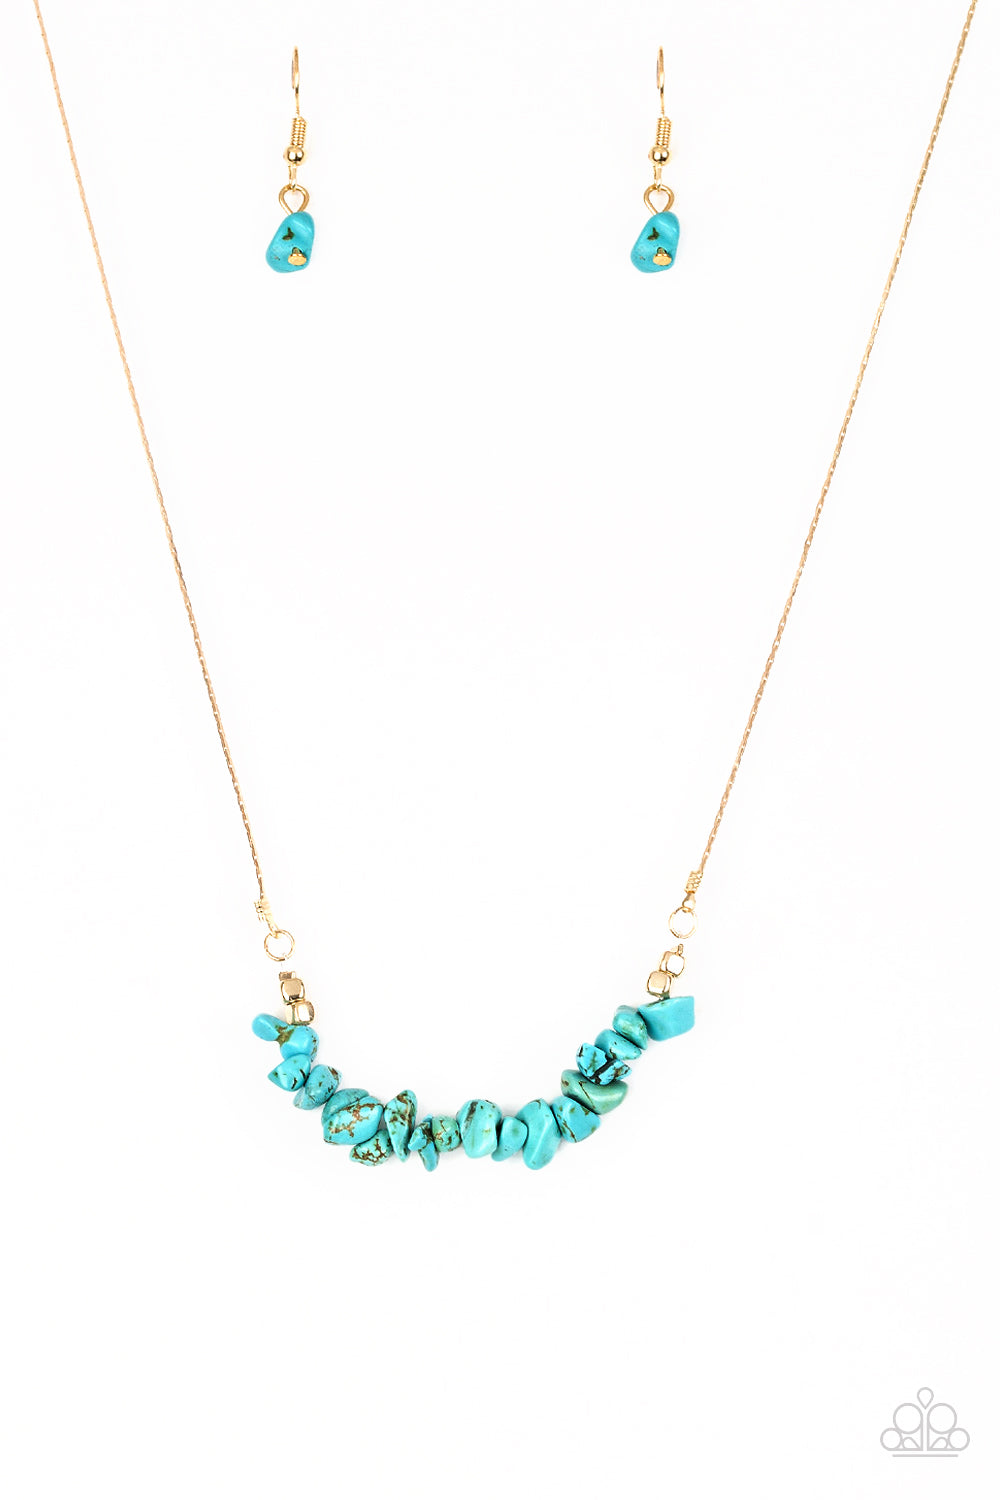 five-dollar-jewelry-back-to-nature-blue-necklace-paparazzi-accessories